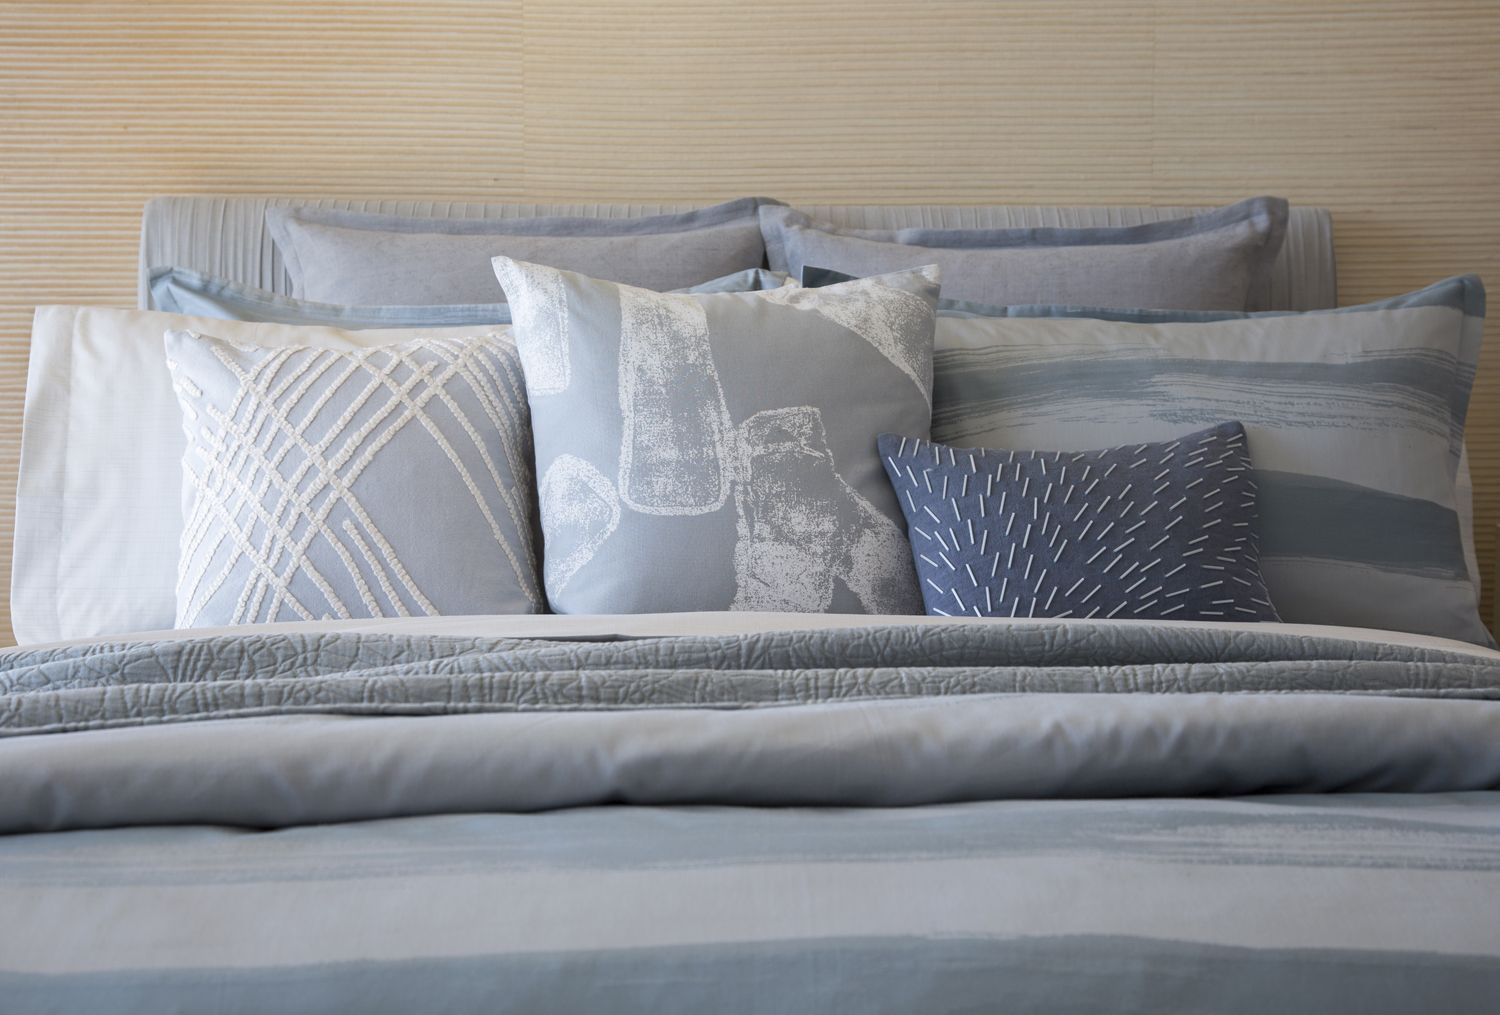 from the 'zuma' bedding set, part of the kelly wearstler luxe